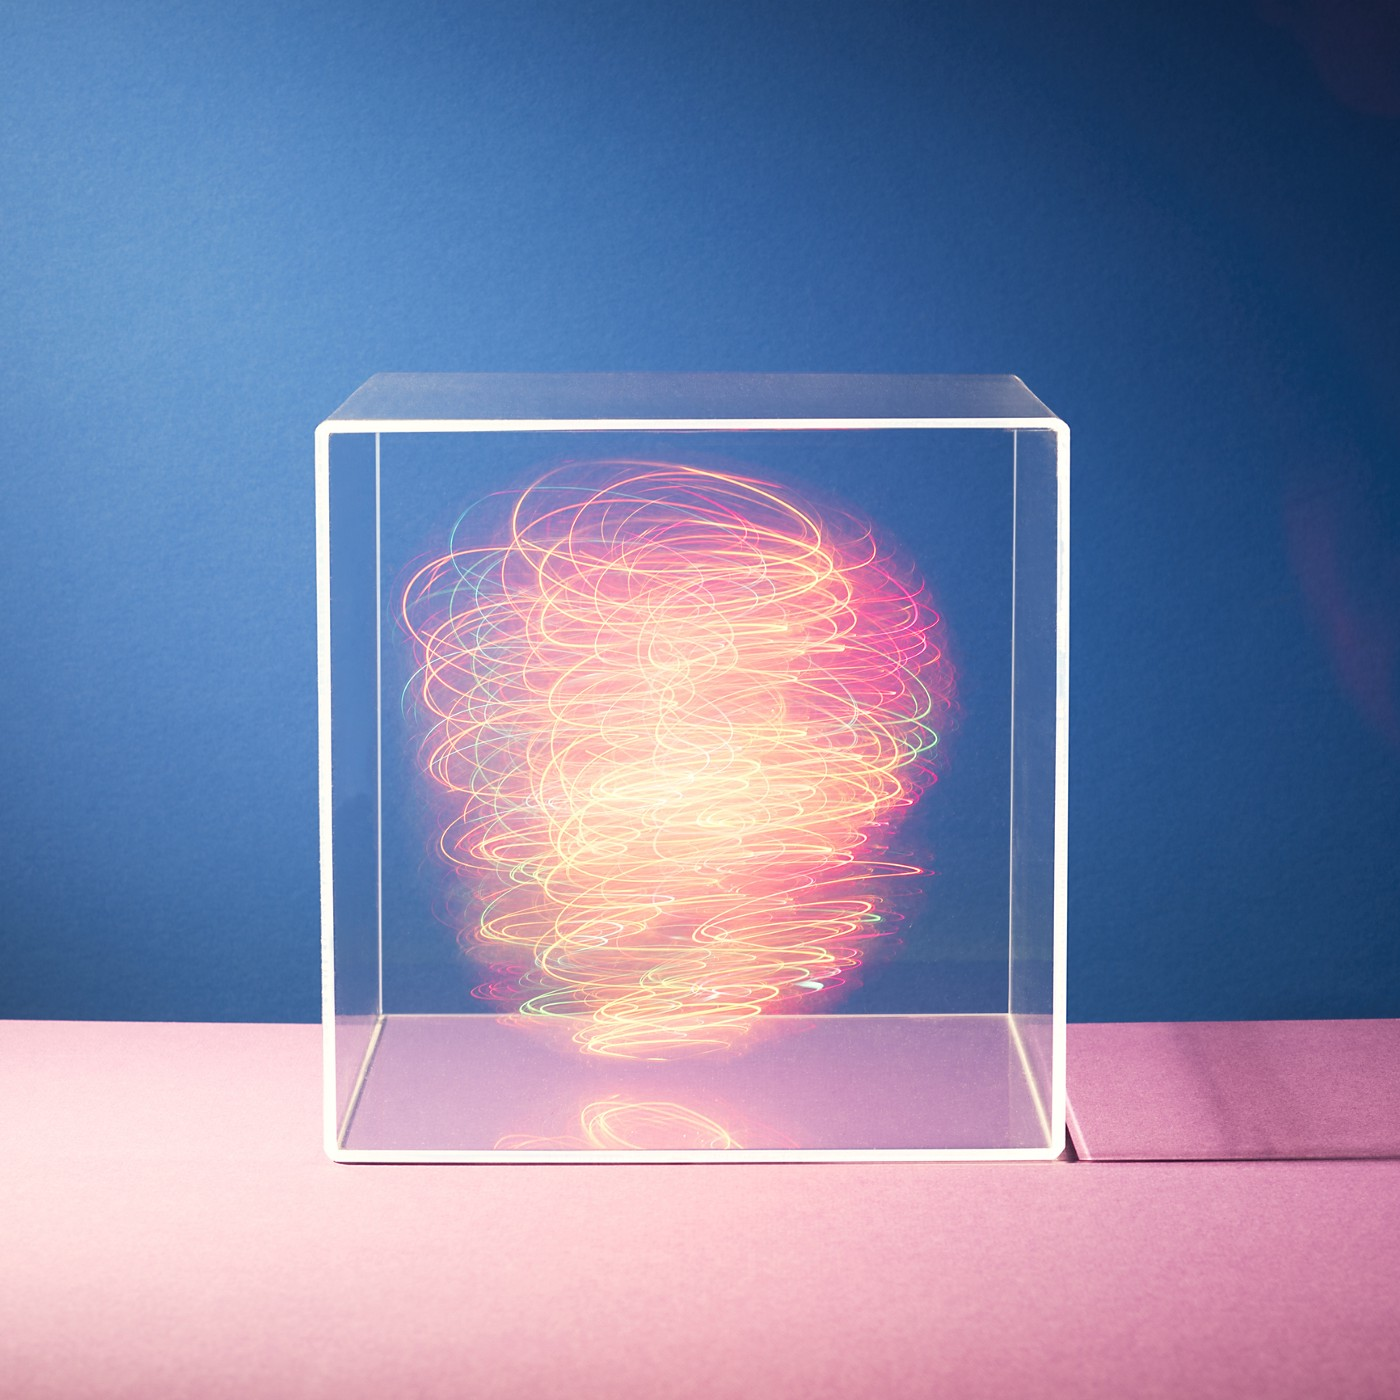 Colorful lights swirling around inside a clear box.